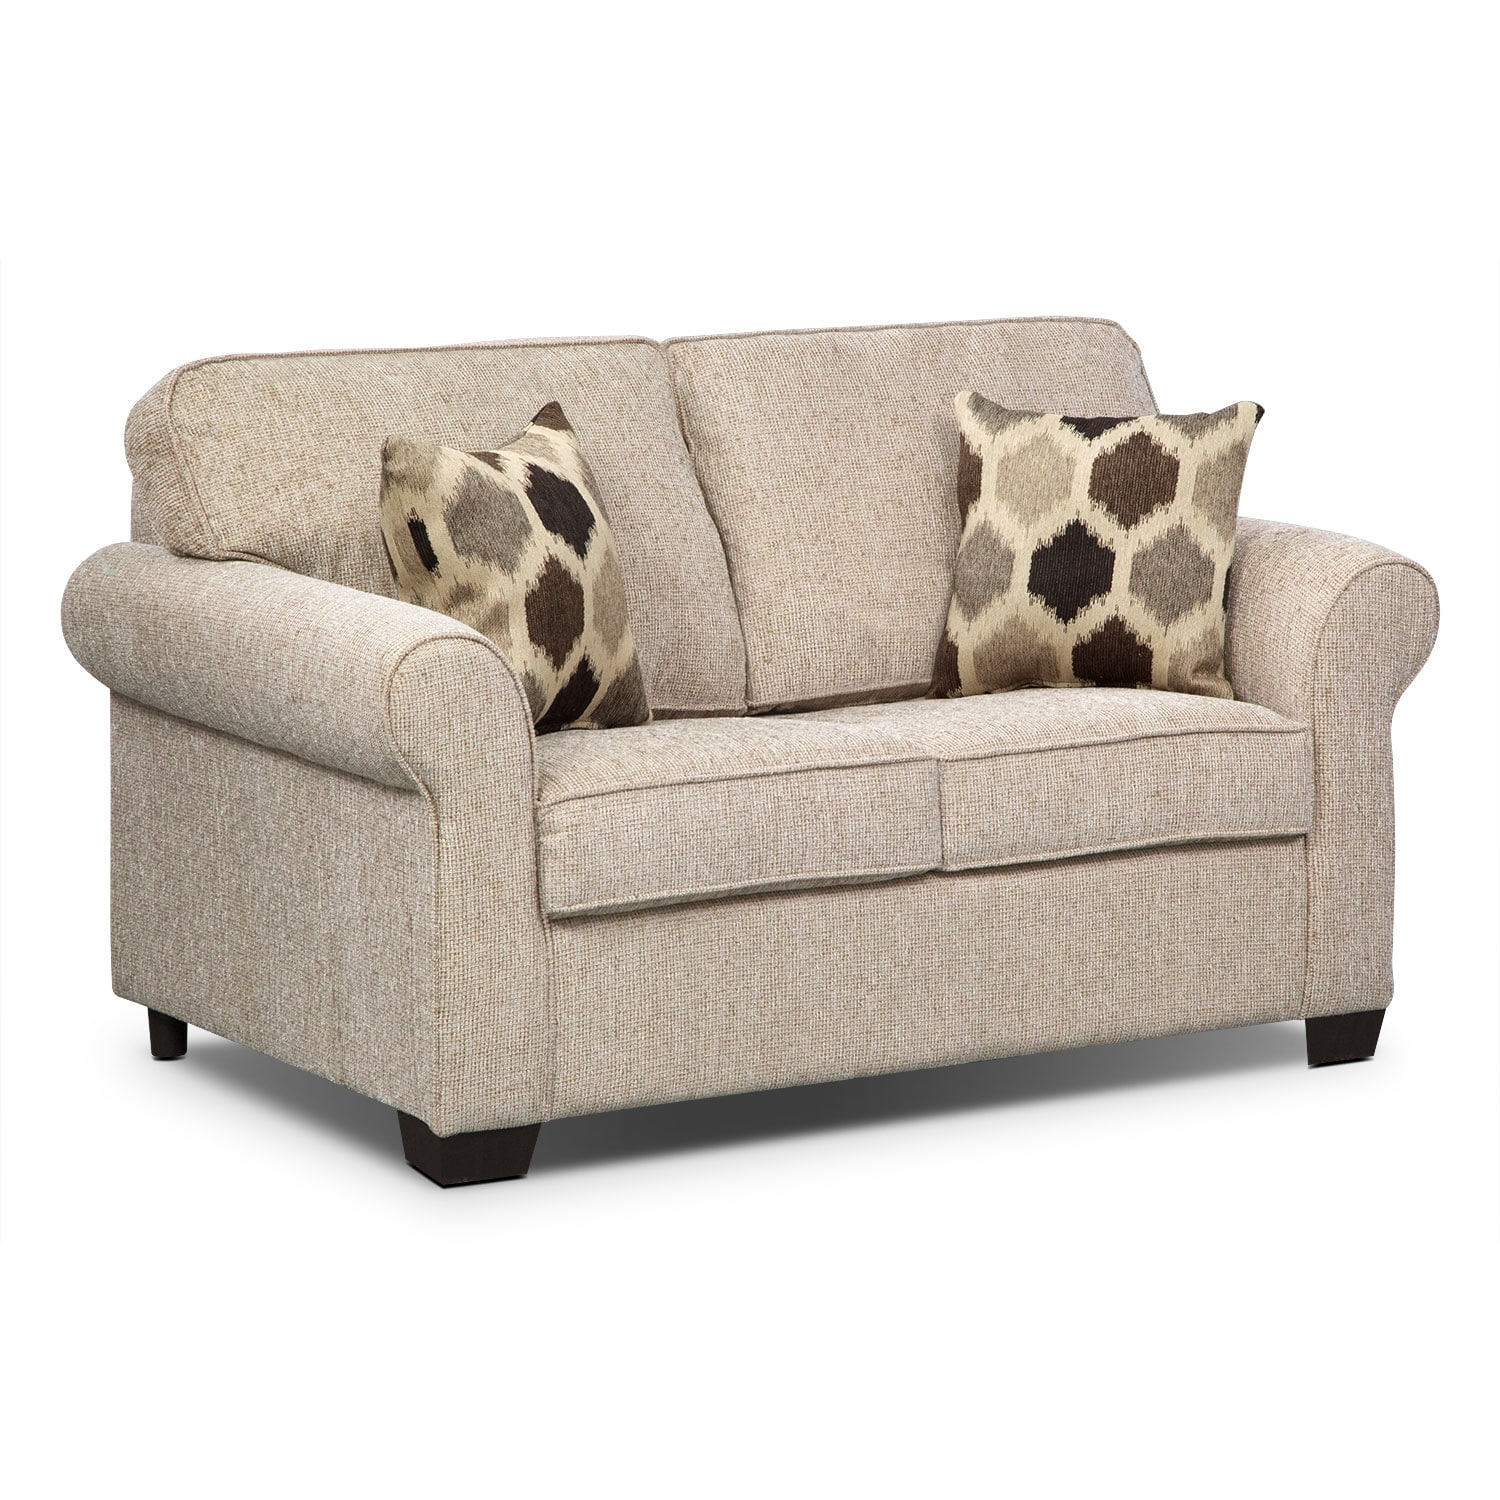 Fletcher Twin Innerspring Sleeper Sofa American  : 372774 from americansignaturefurniture.com size 1500 x 1500 jpeg 419kB